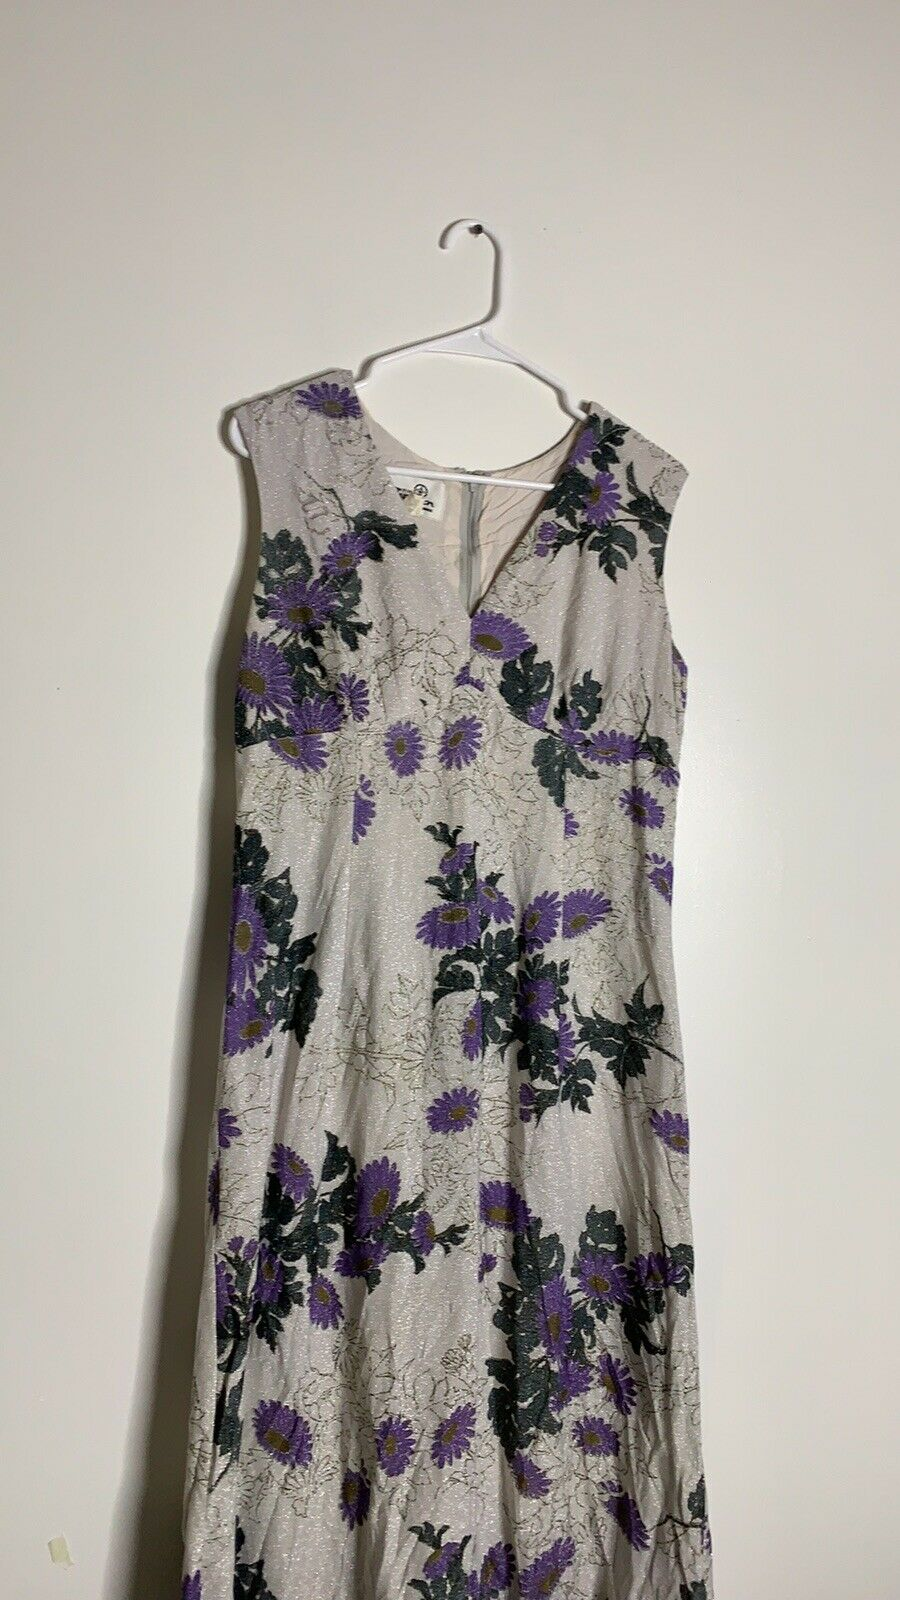 Vintage Alfred Shaheen Daisy Dress - image 2